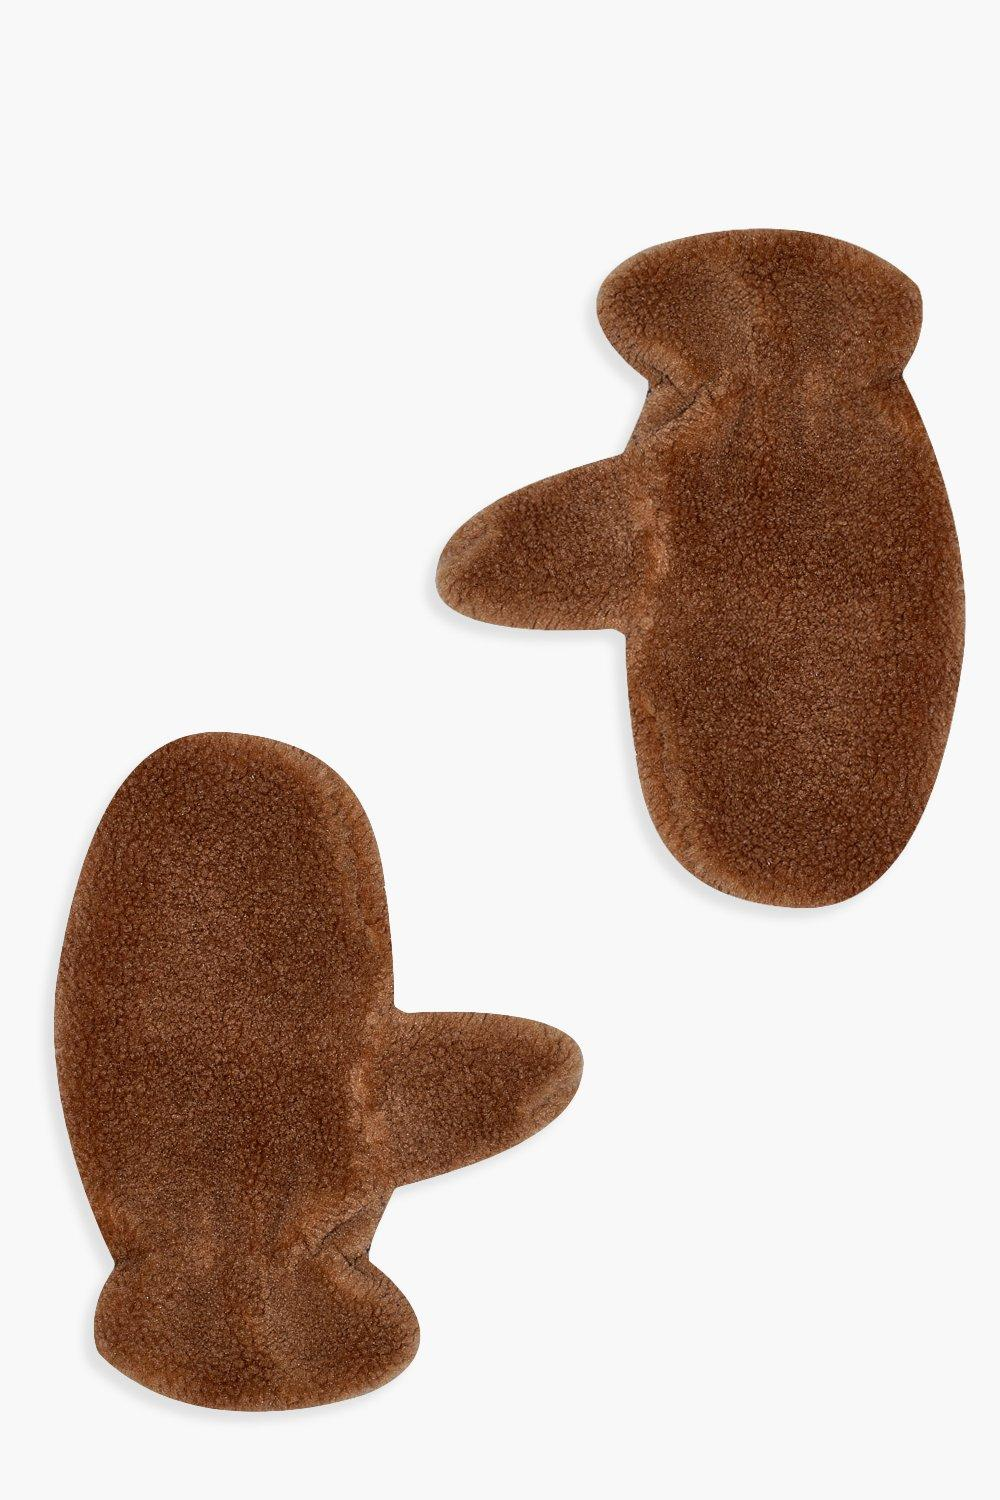 boohoo Womens Teddy Borg Mittens - Brown - One Size, Brown